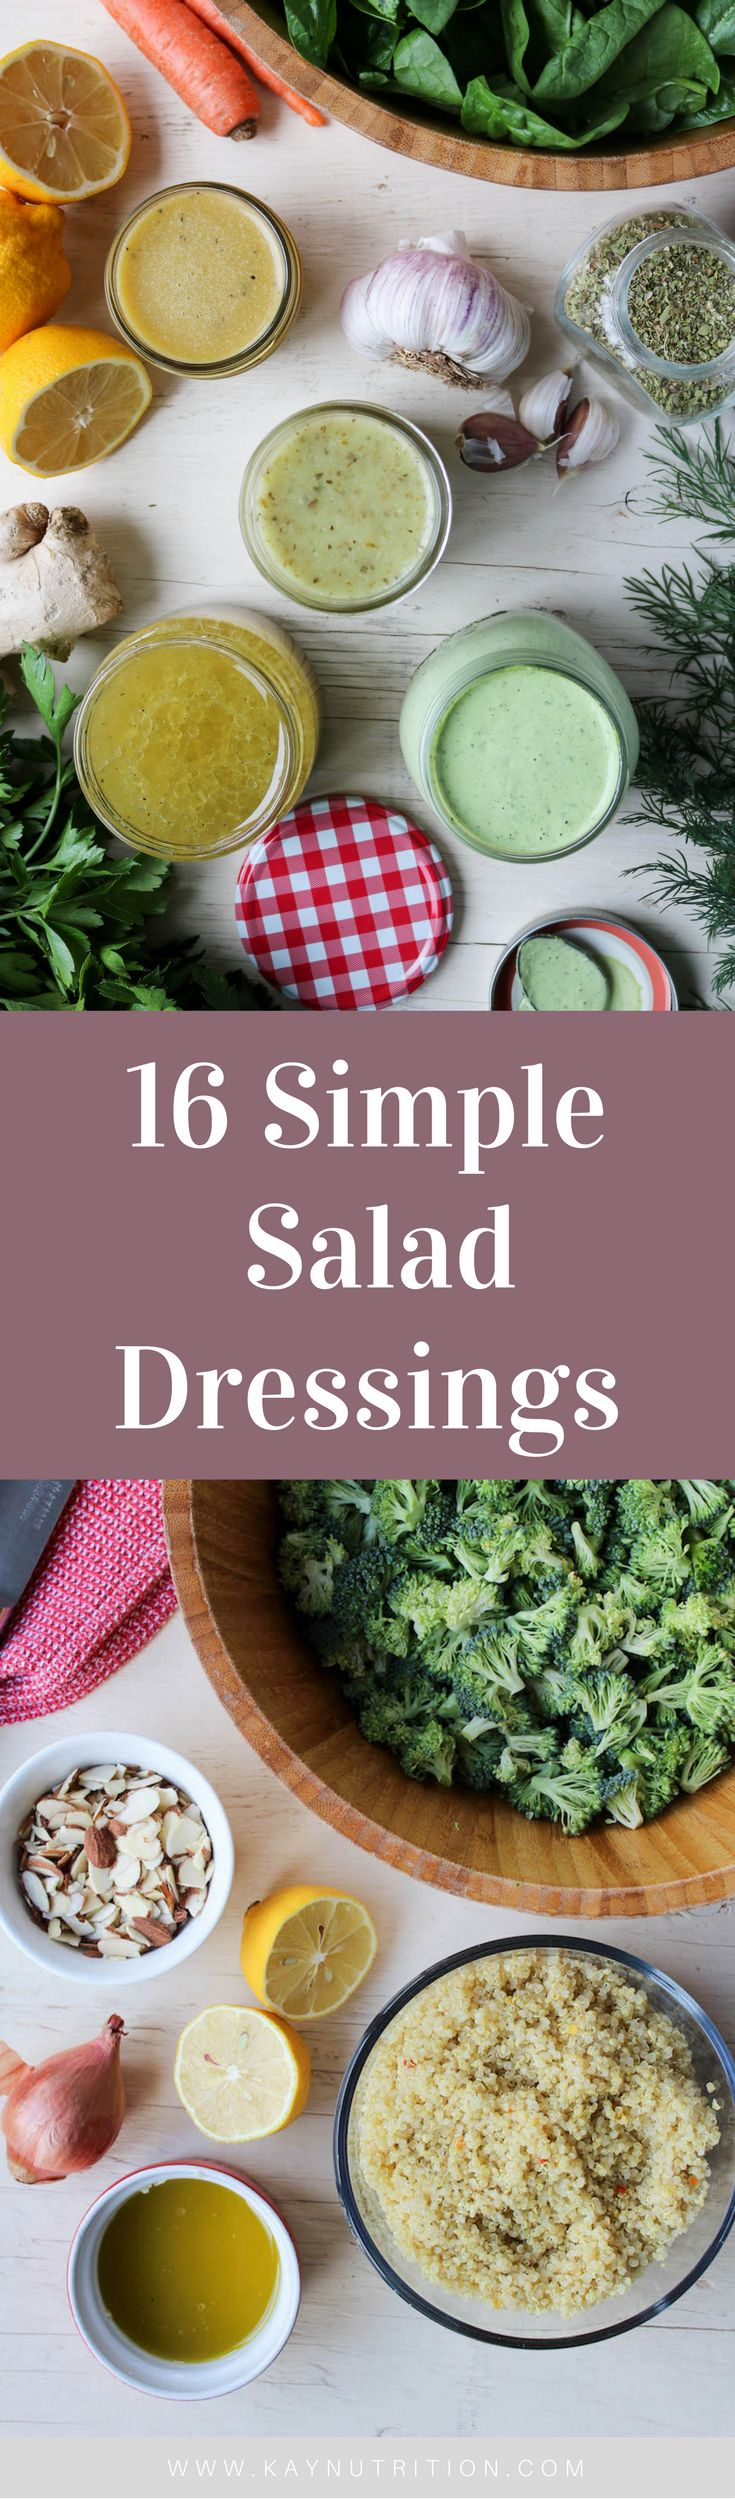 This Simple Salad Dressings eBook contains 16 dressing recipes that are incredibly quick and easy to prepare while being rich and full of flavour.